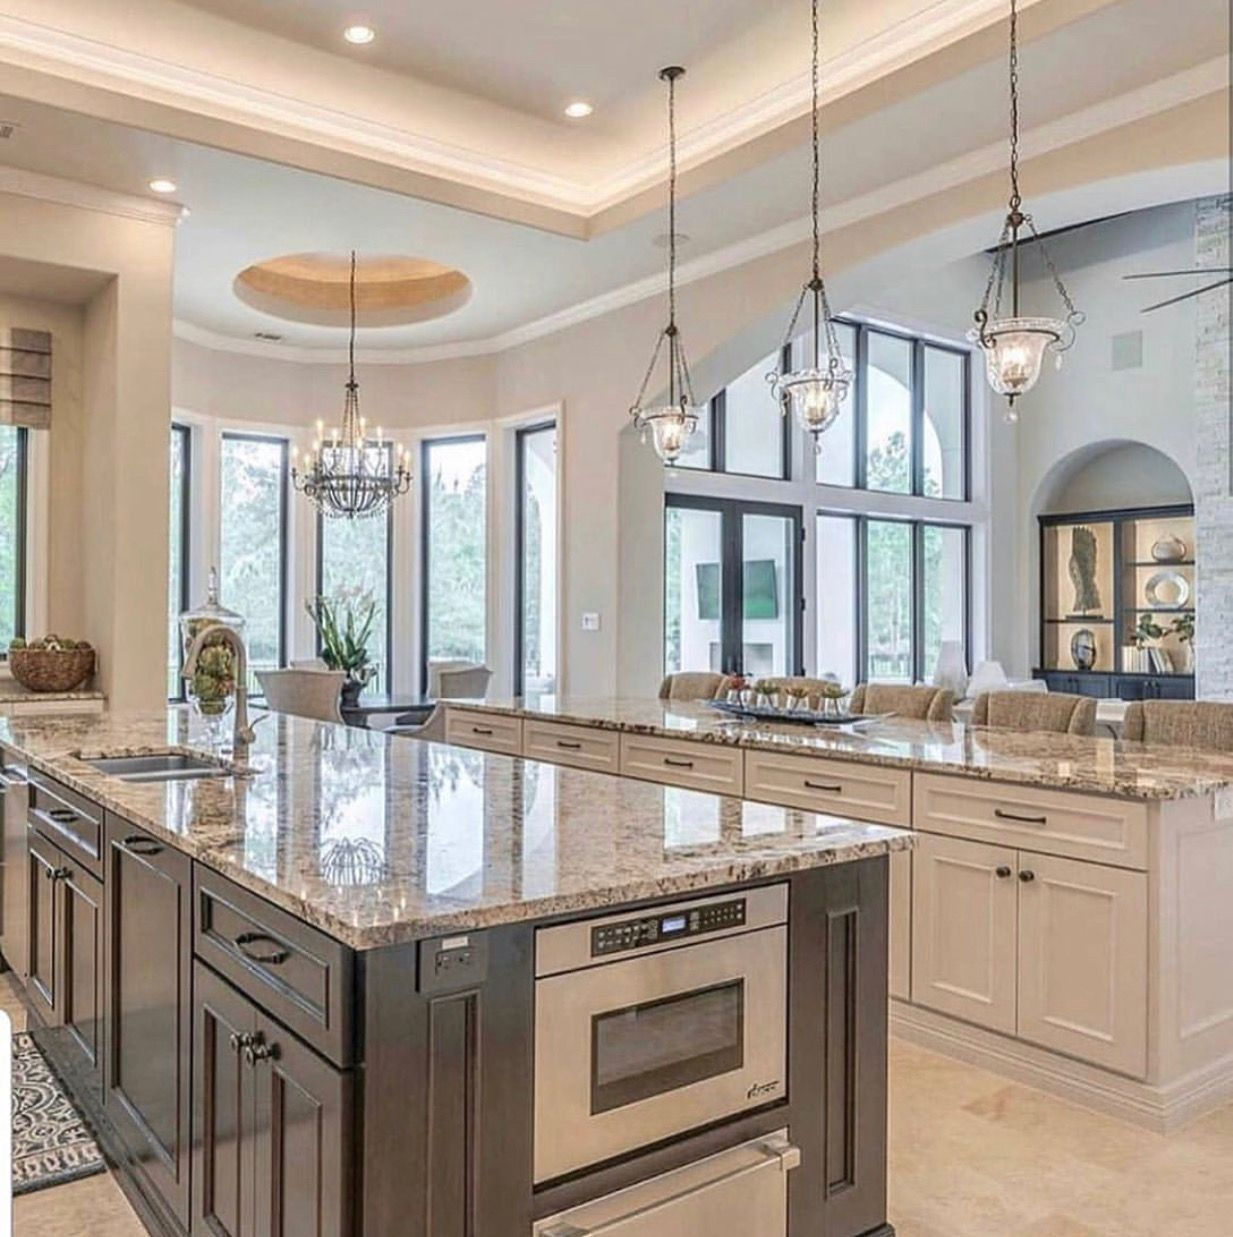 pin by gregg torrey on kitchen kitchen design open kitchen layout kitchen remodel layout on kitchen remodel with island open concept id=97340